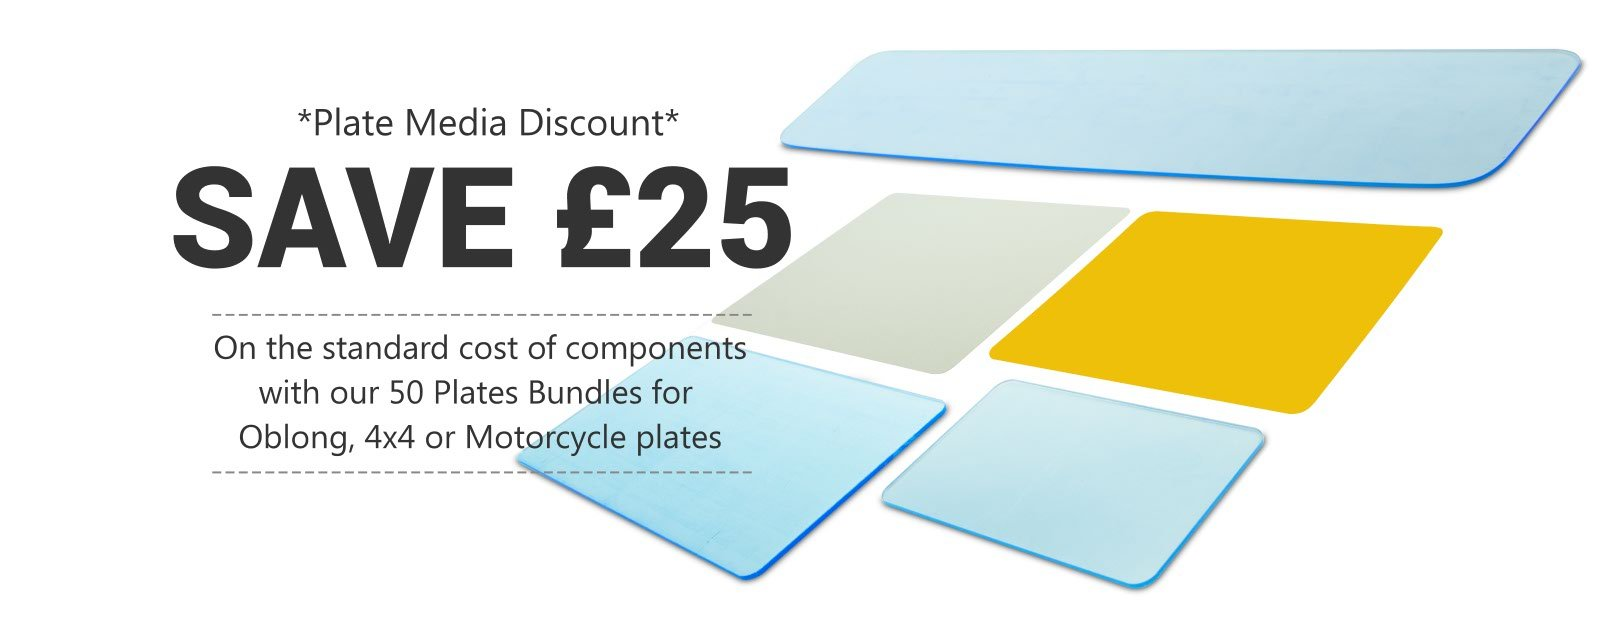 Save £25 on your number plate media with Tennants 50 Plate Bundles